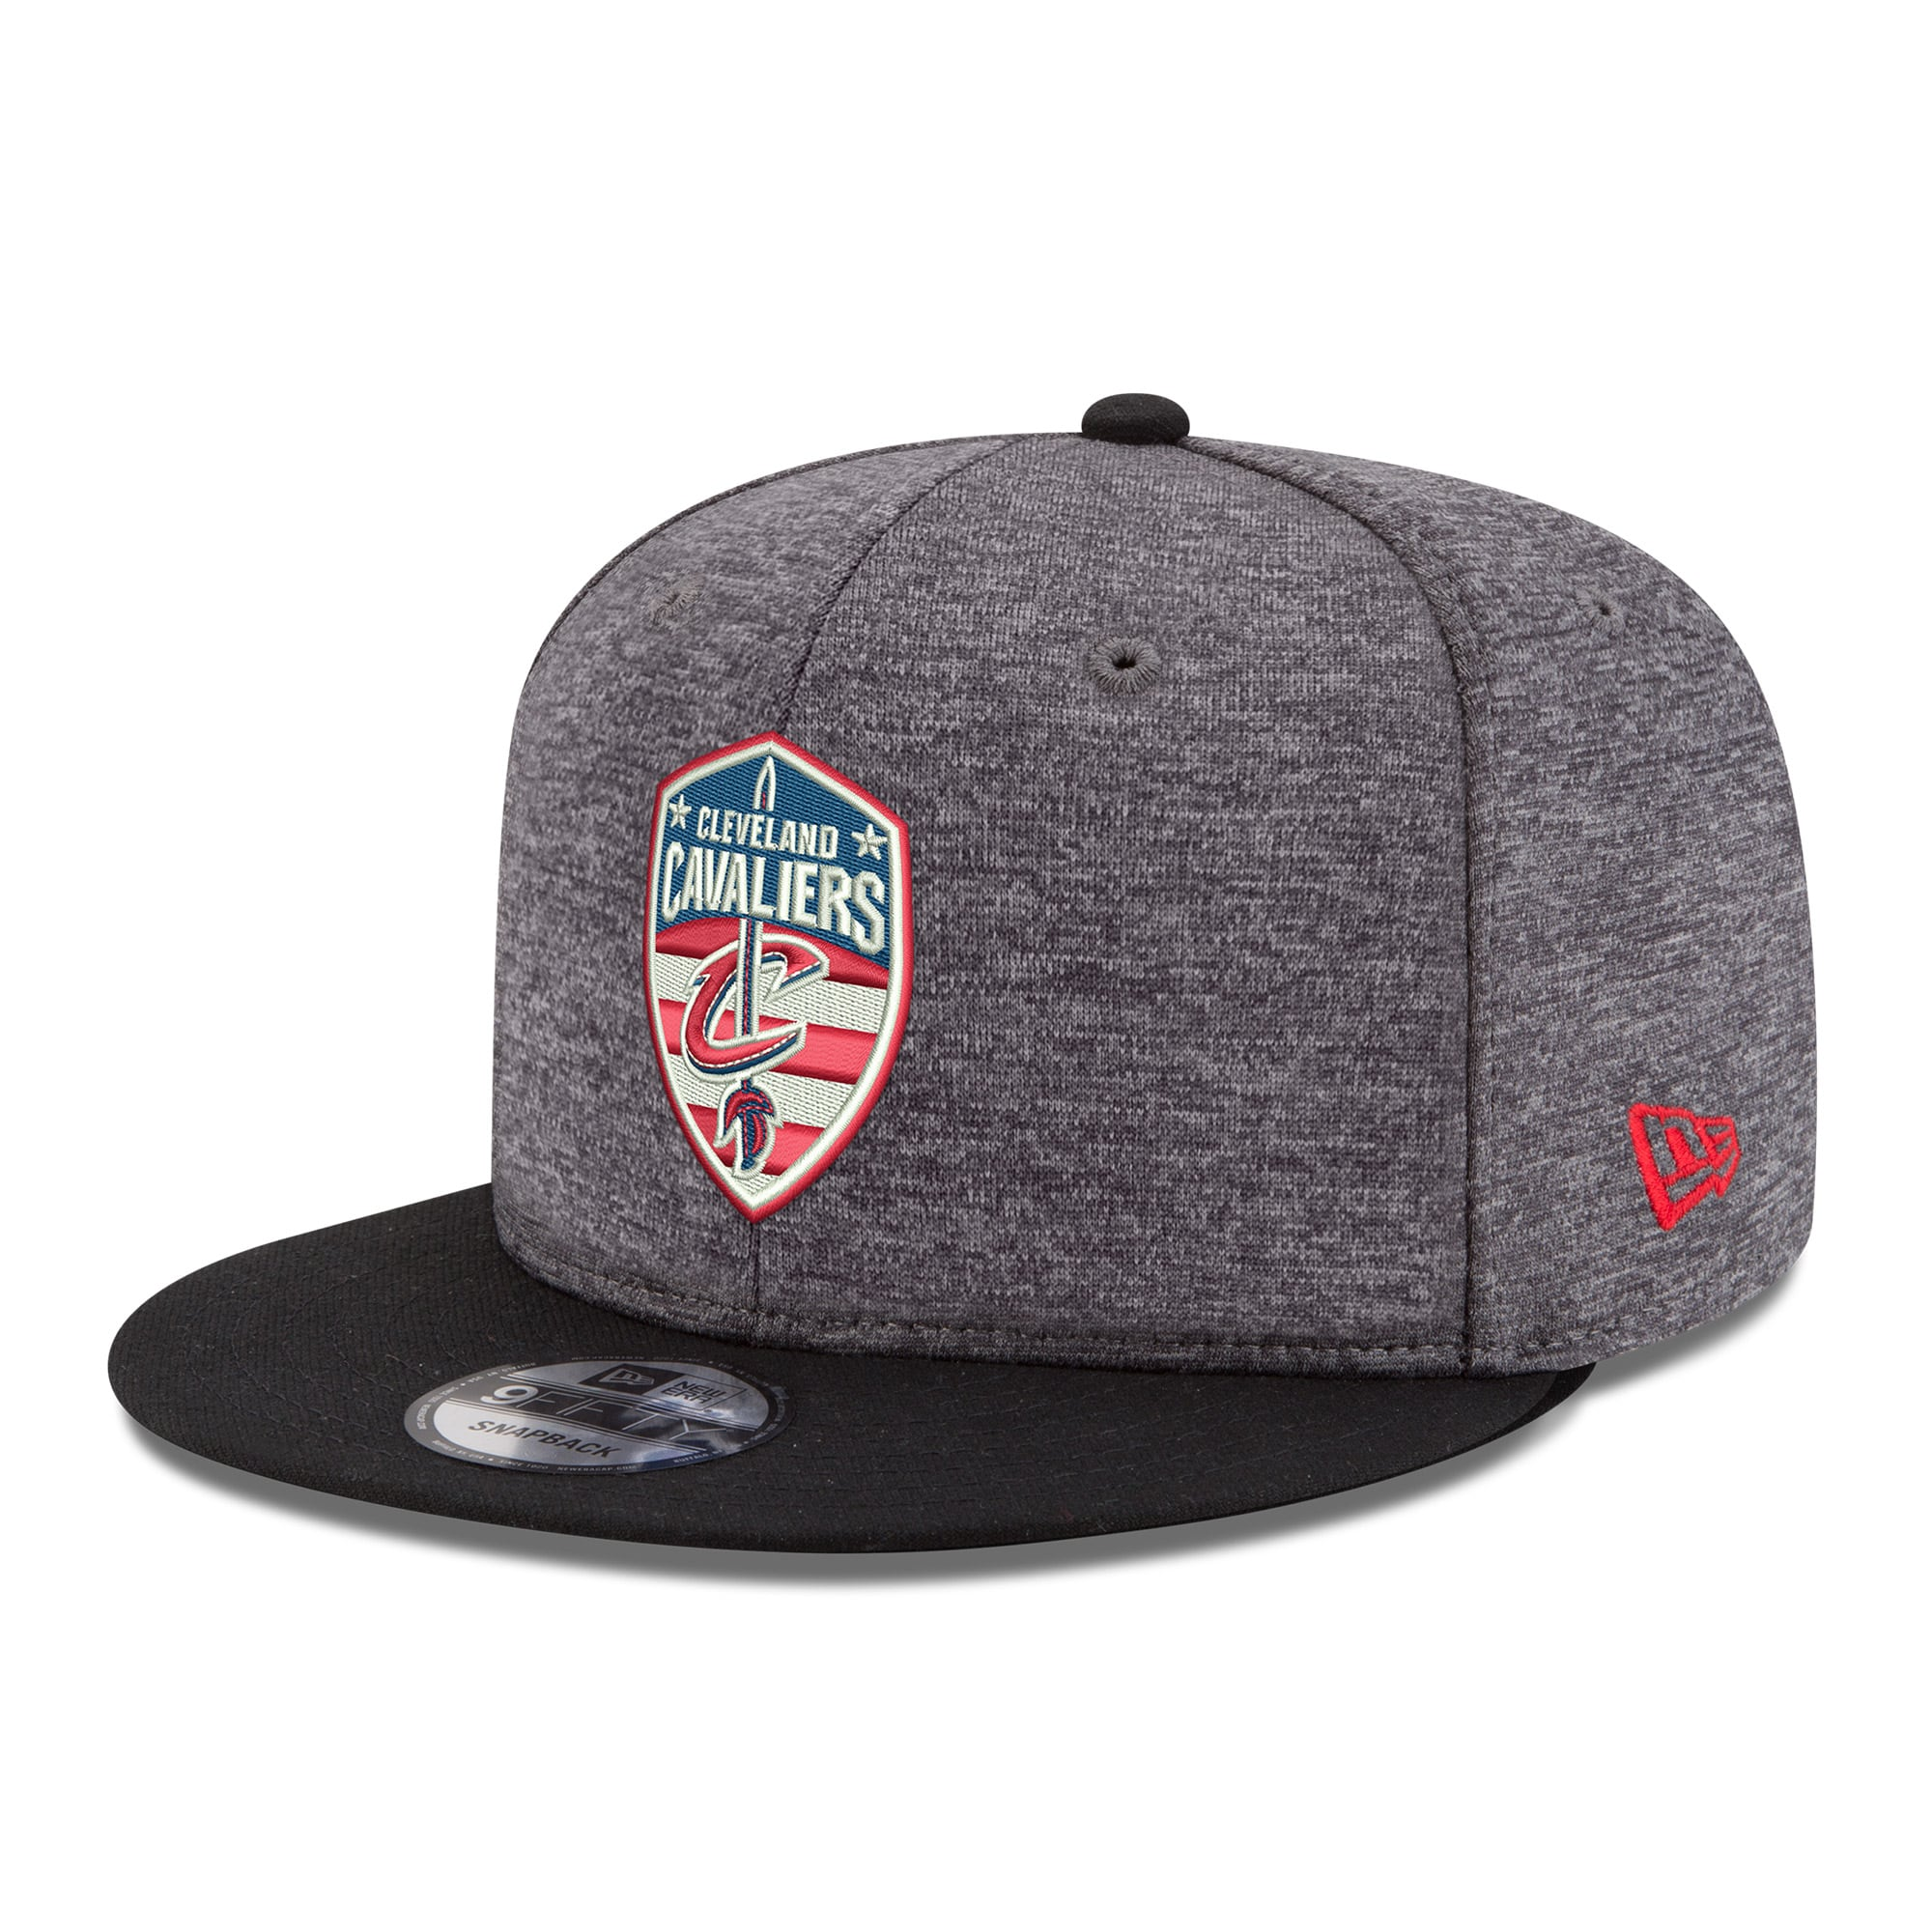 Cleveland Cavaliers New Era Hoops for Troops 9FIFTY Adjustable Snapback Hat - Heather Gray